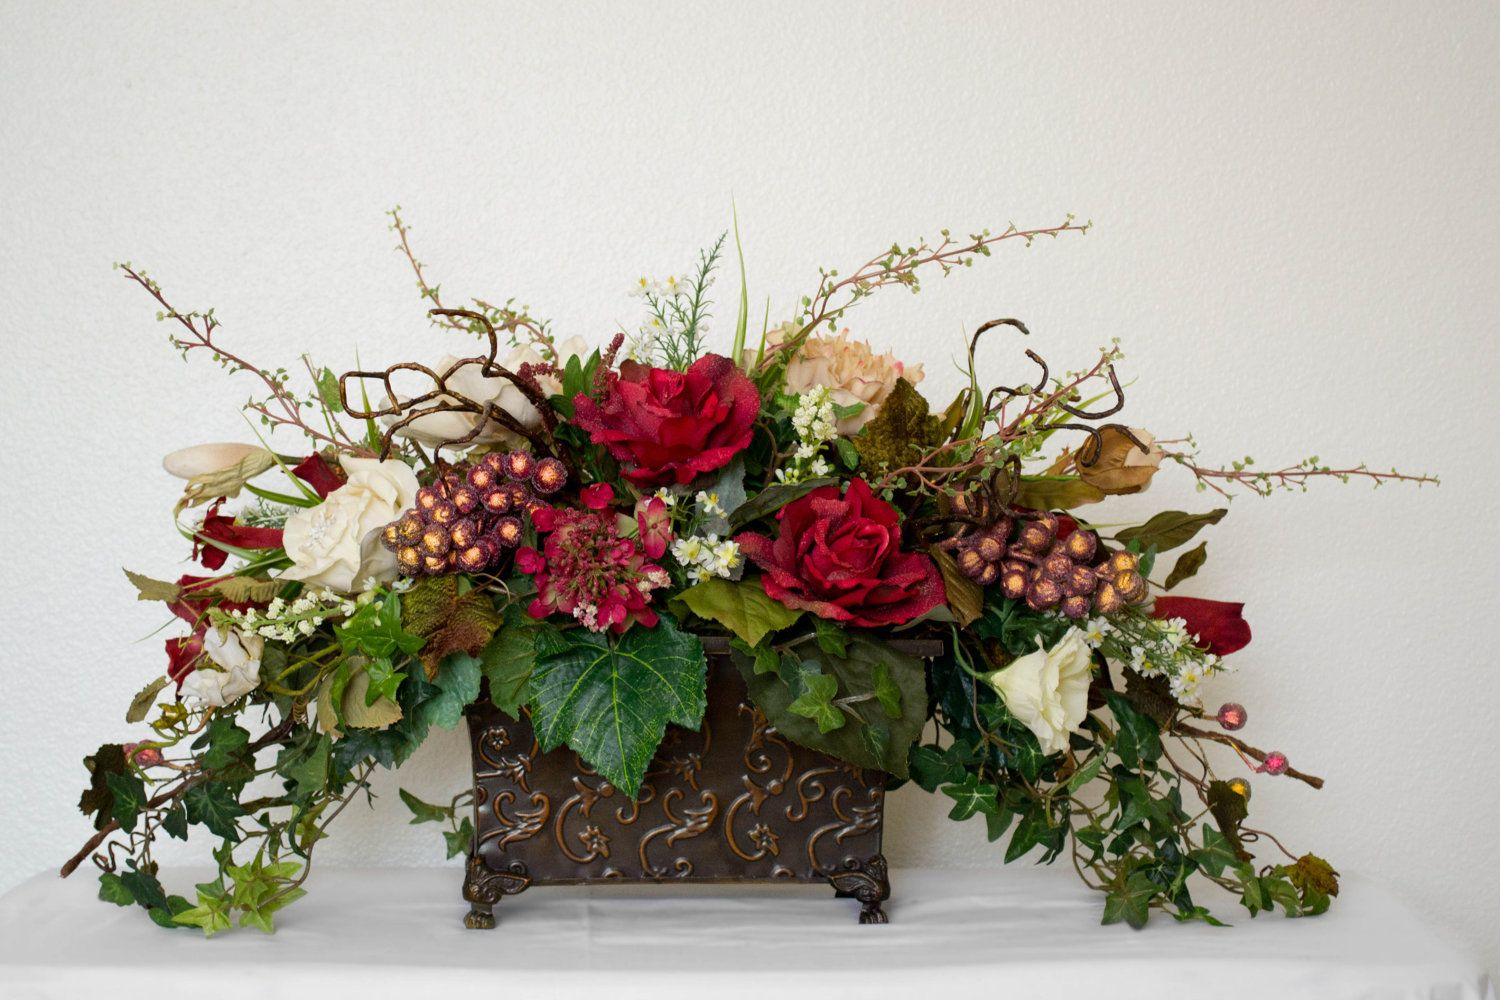 Christmas Flower Arrangements Artificial.Medium Silk Floral Arrangement With Roses Grapes And Ivy